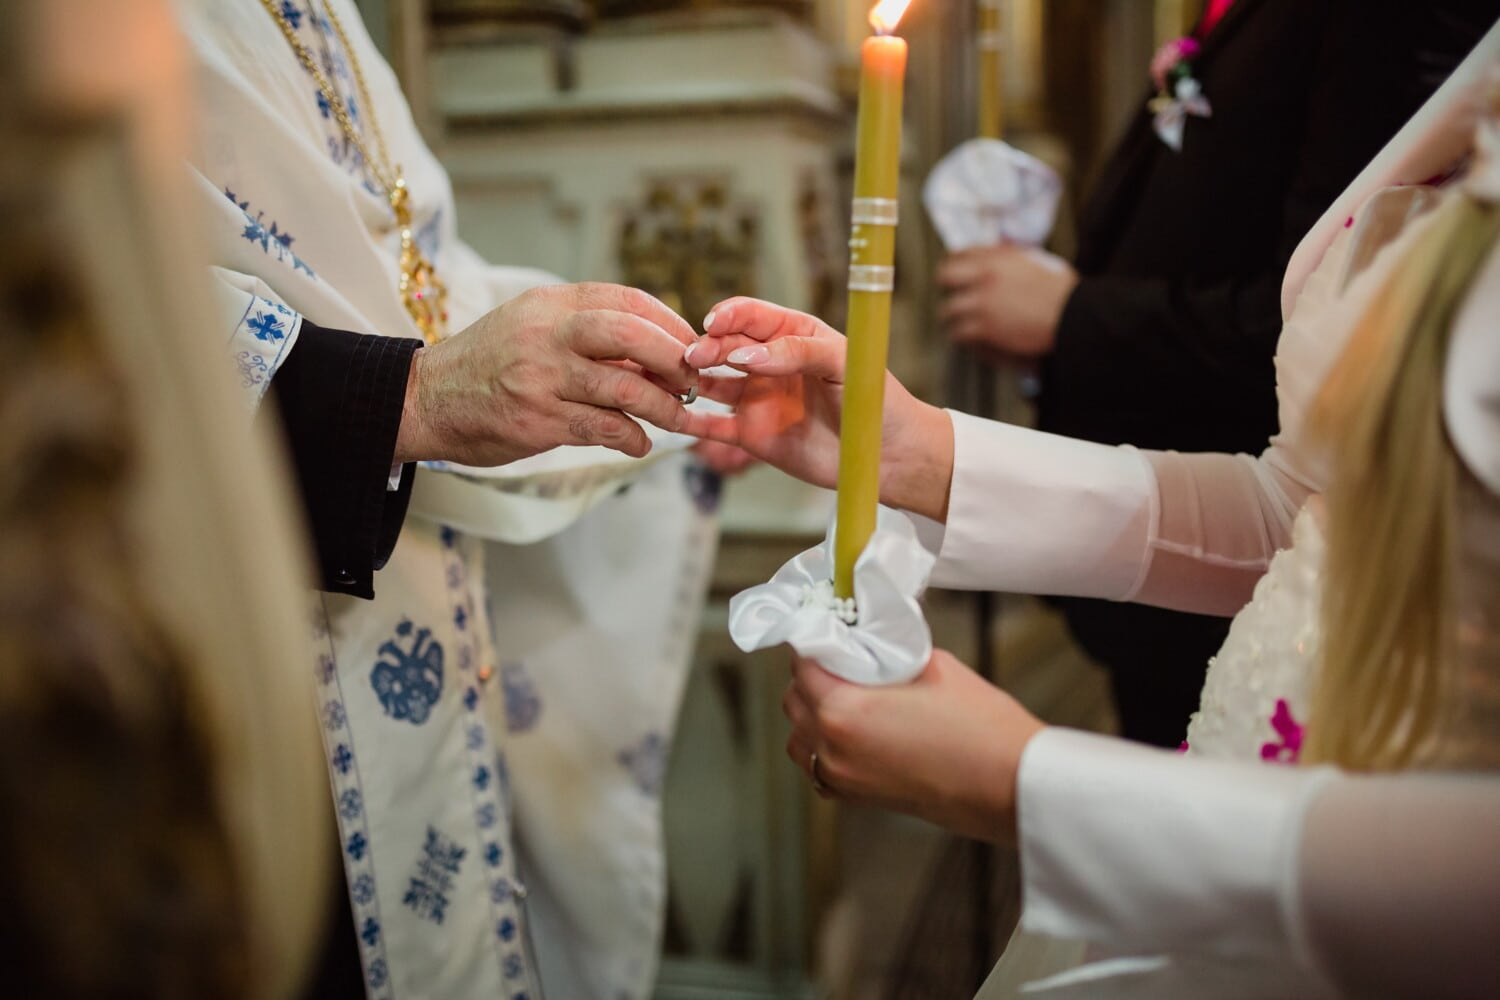 priest, wedding, orthodox, ceremony, bride, groom, wedding ring, candlelight, candle, torch